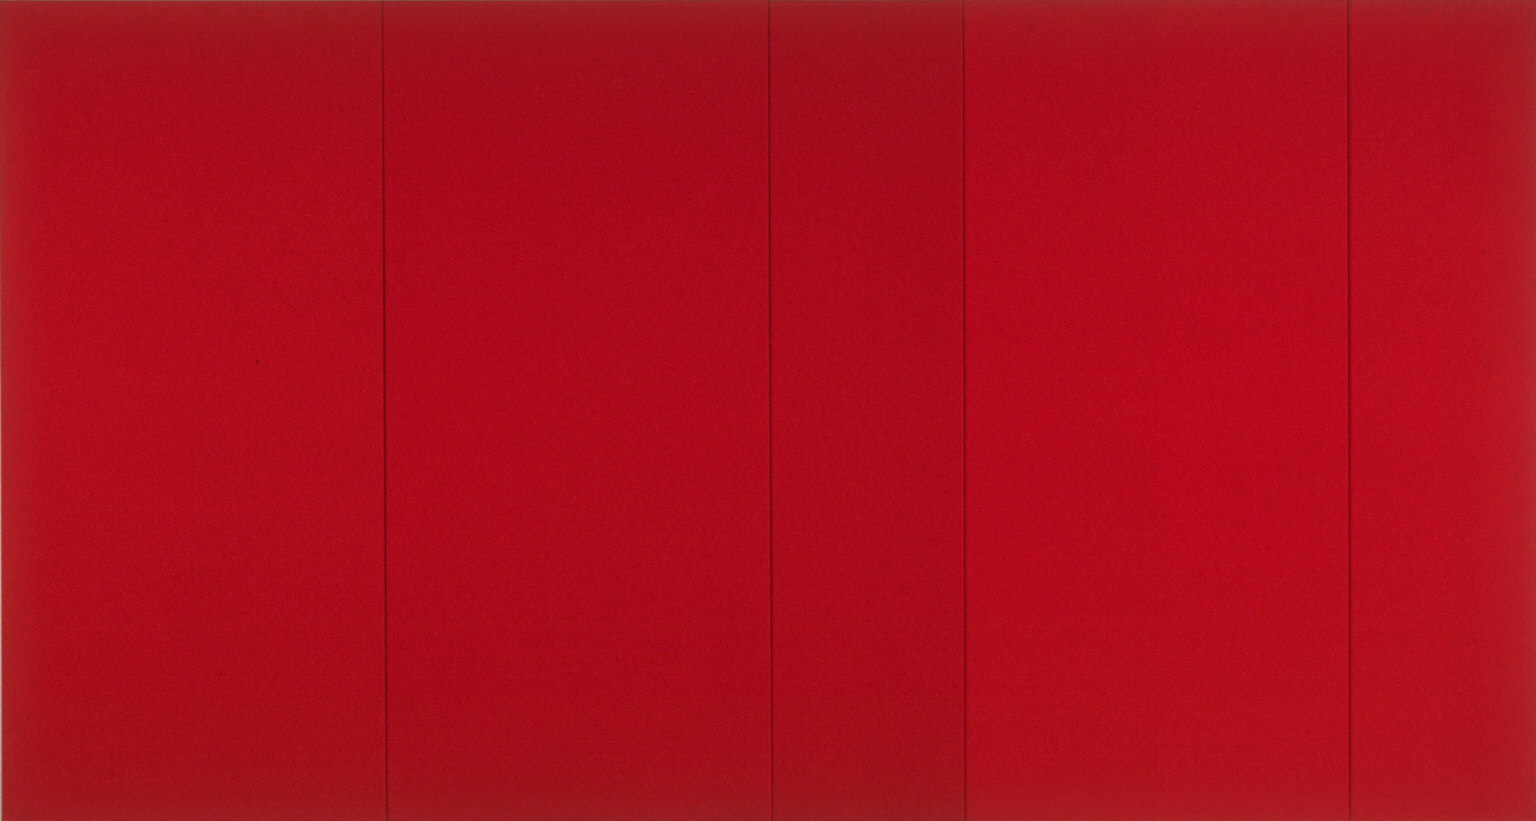 From Cadmium Red Deep